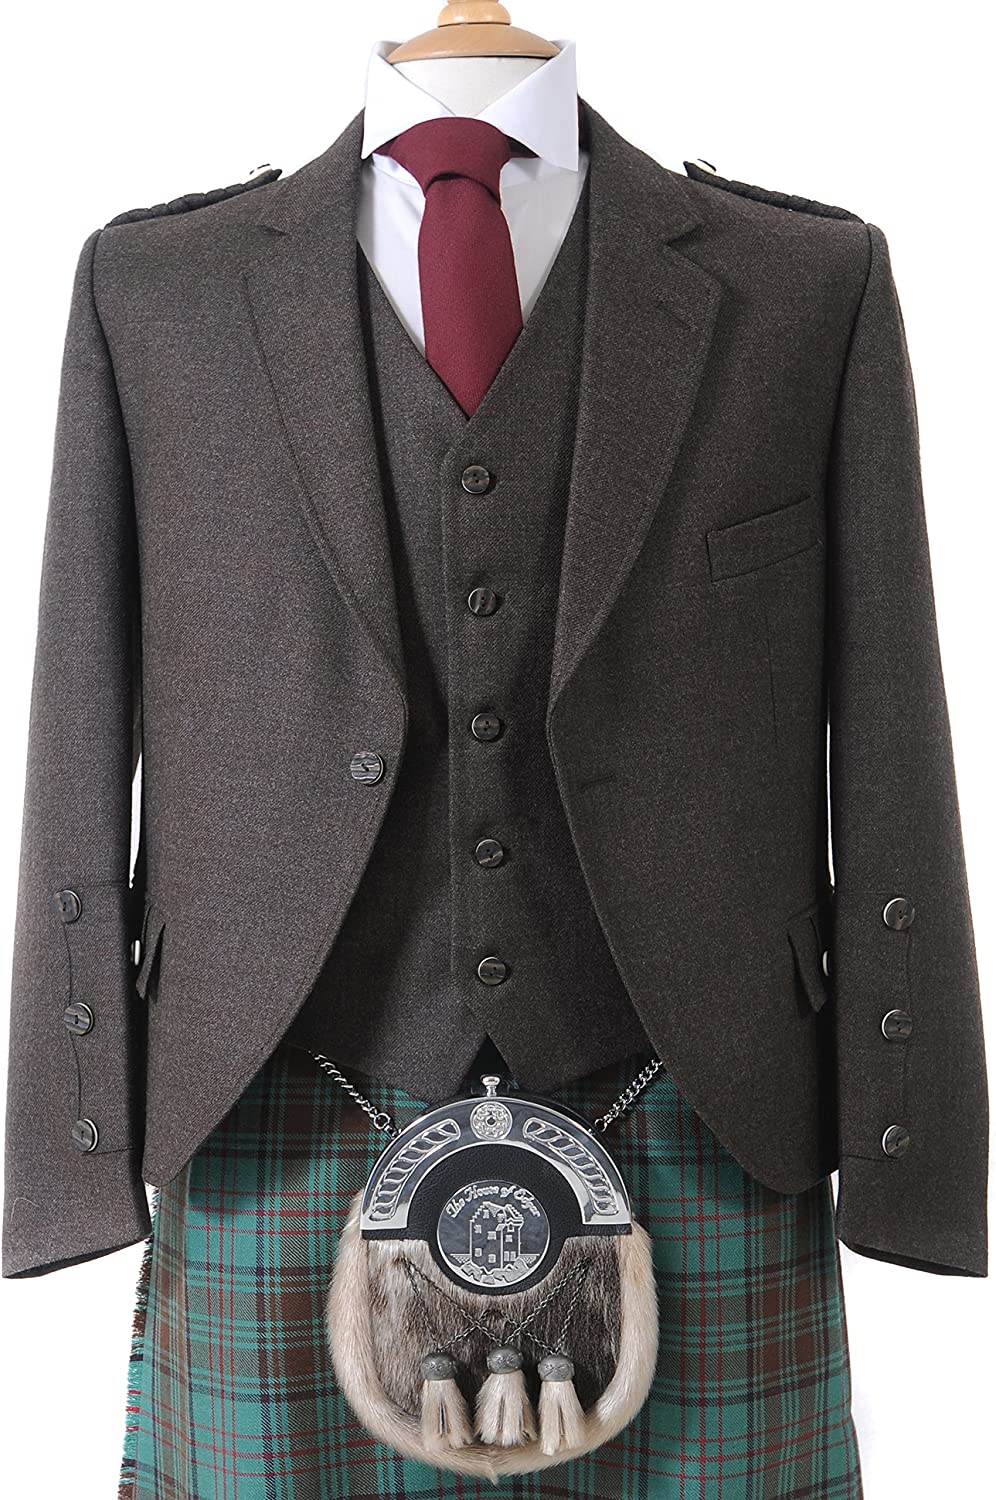 Crail Highland Jacket and Five Button Waistcoat in Peat Brown Arrochar Tweed - Long Fit